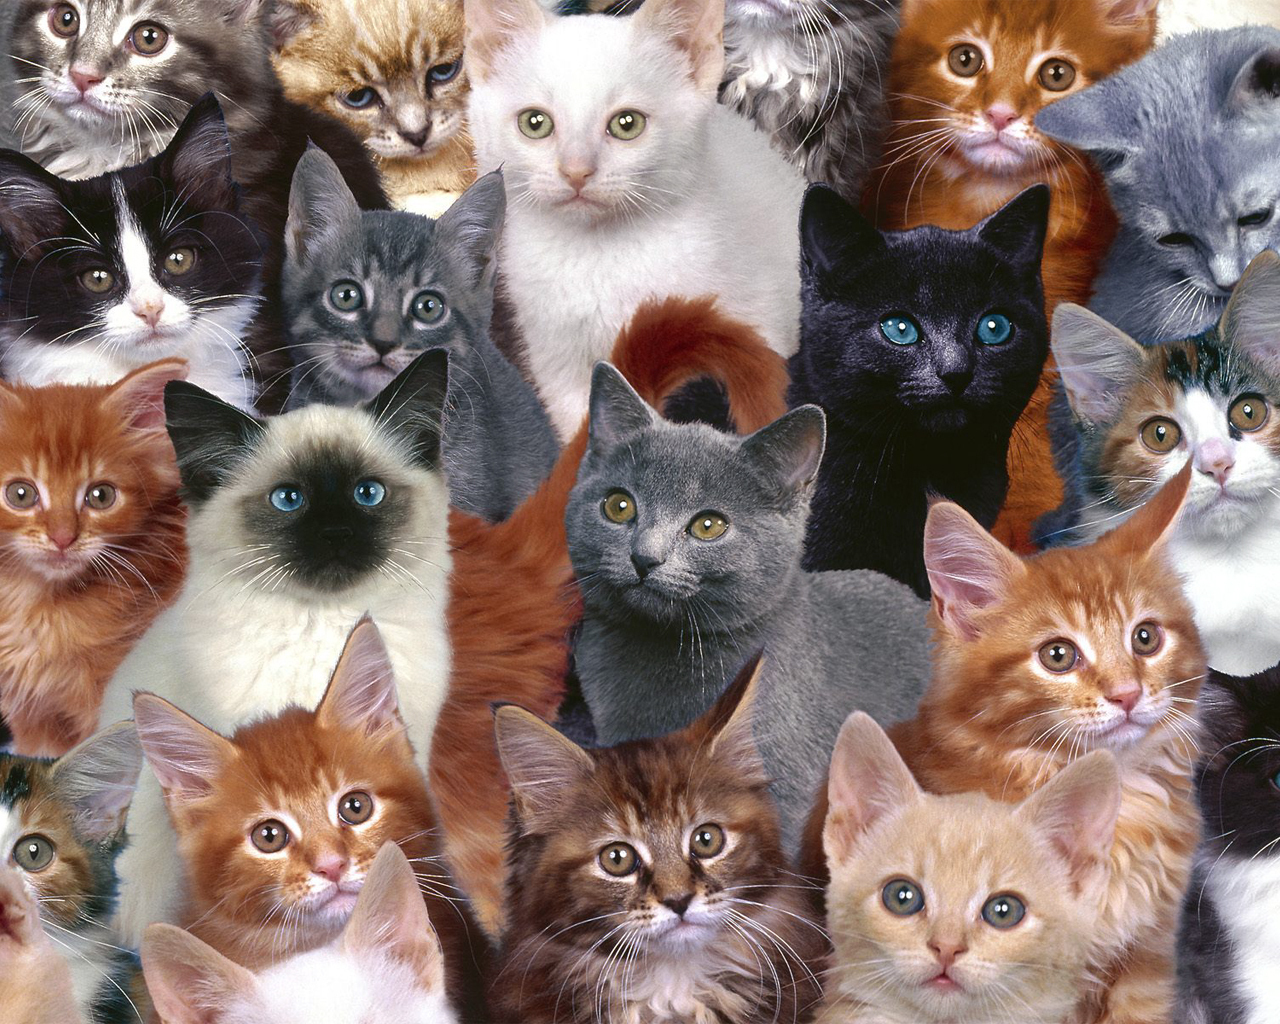 Cats images Cats wallpaper HD wallpaper and background photos 5194935 1280x1024